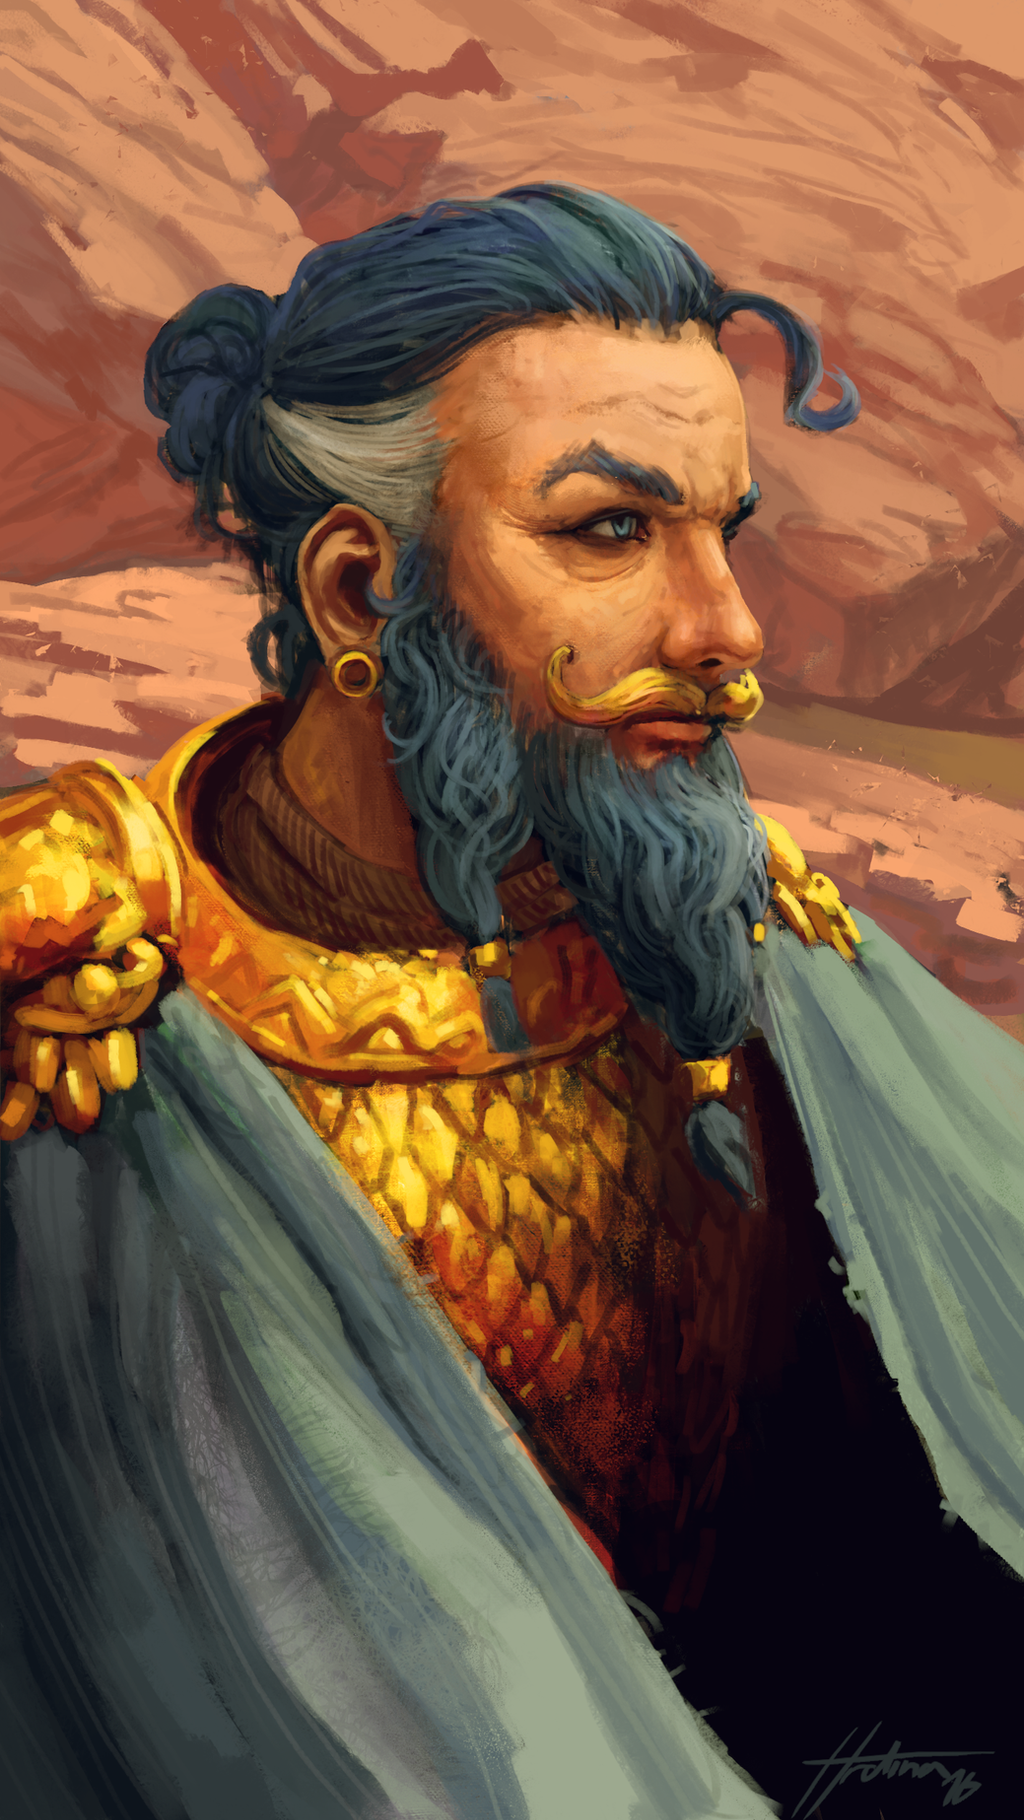 Daario Naharis by Xyrlei on DeviantArt Daario Naharis Arakh